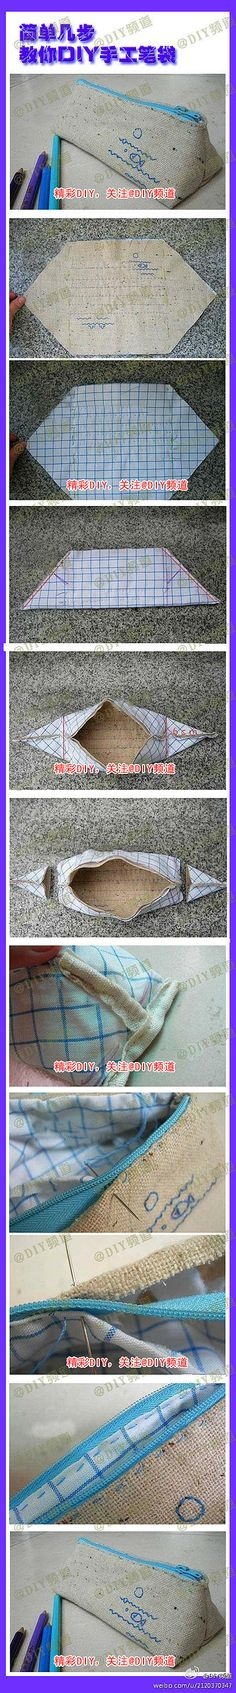 DIY pencil case or makeup bag. Sewing Hacks, Sewing Tutorials, Sewing Patterns, Tutorial Sewing, Fabric Crafts, Sewing Crafts, Sewing Projects, Tape Crafts, Pencil Bags